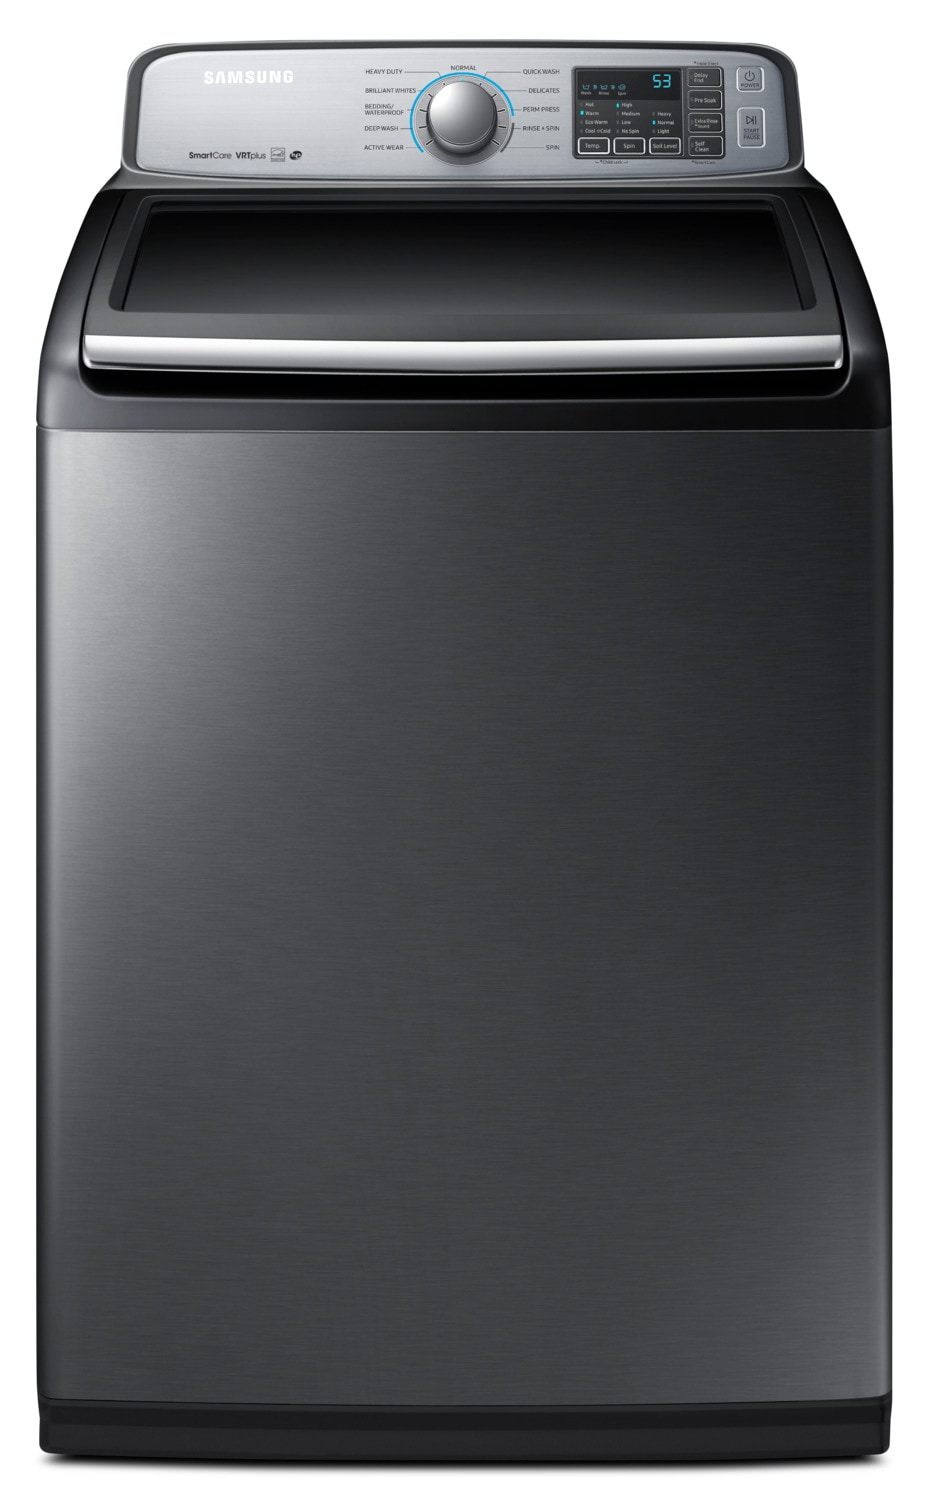 Samsung 5.8 Cu. Ft. Top-Load Washer – WA50M7450AP/A4